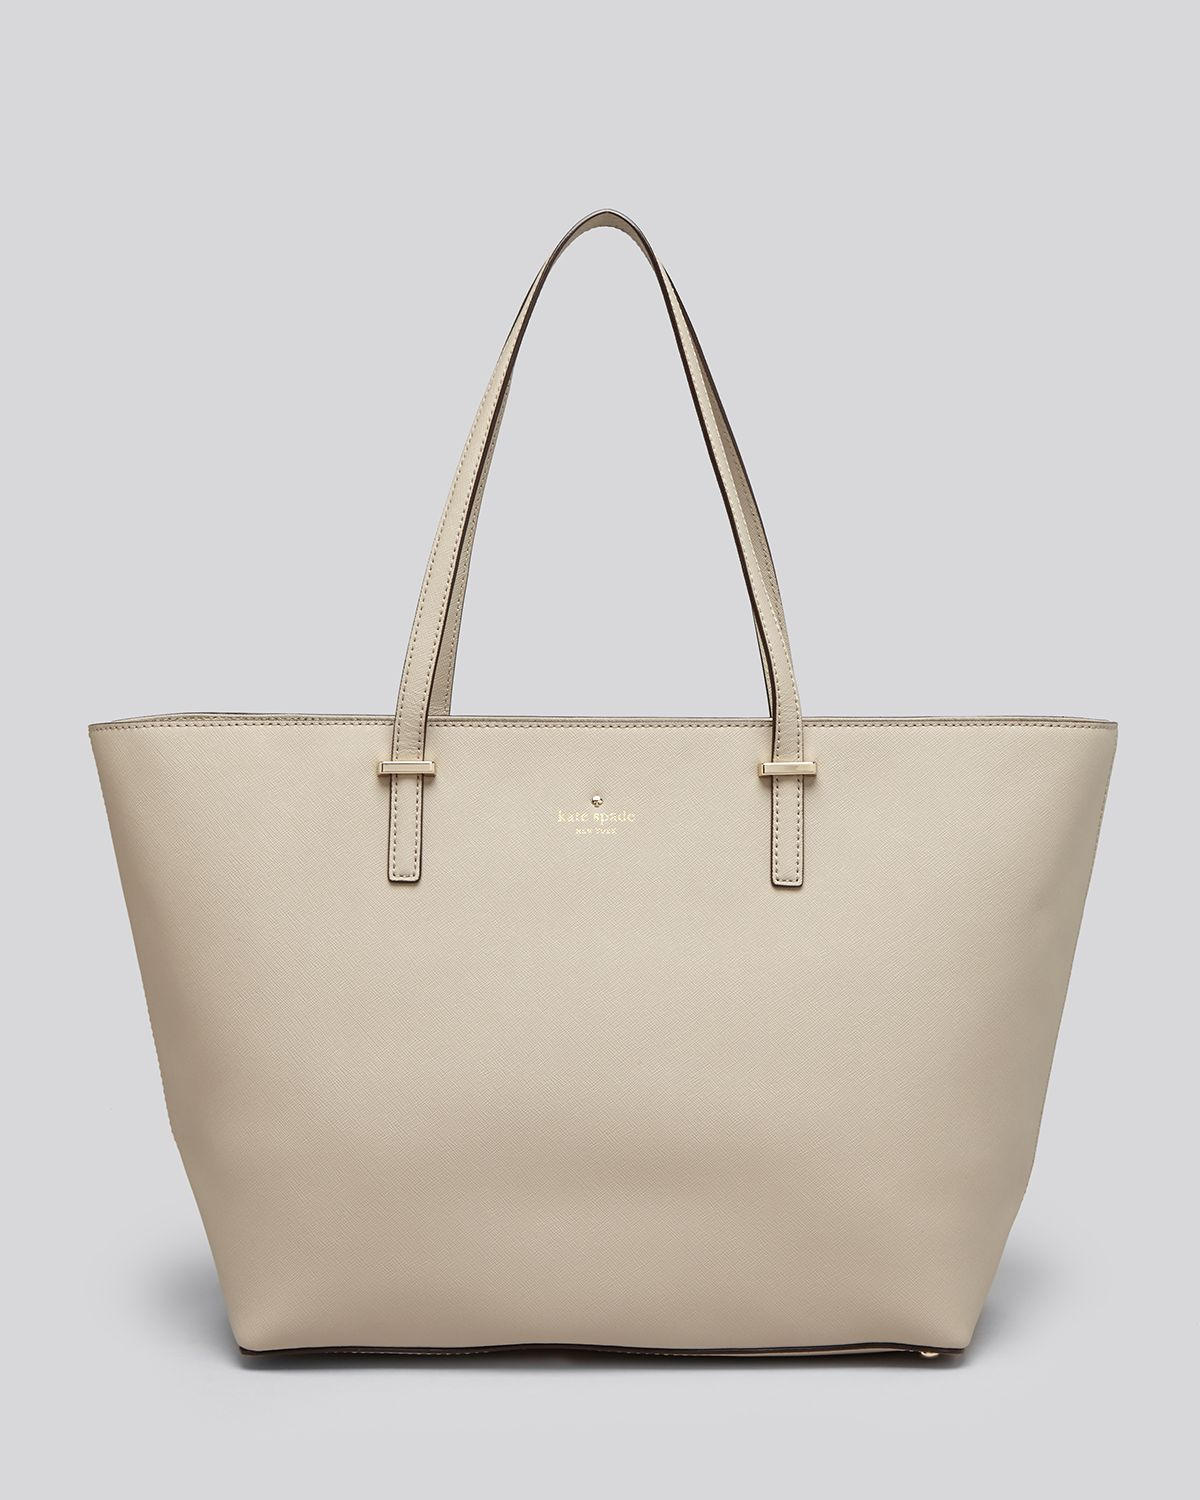 $130.40 kate spade new york Cedar Street Small Harmony Tote Bag